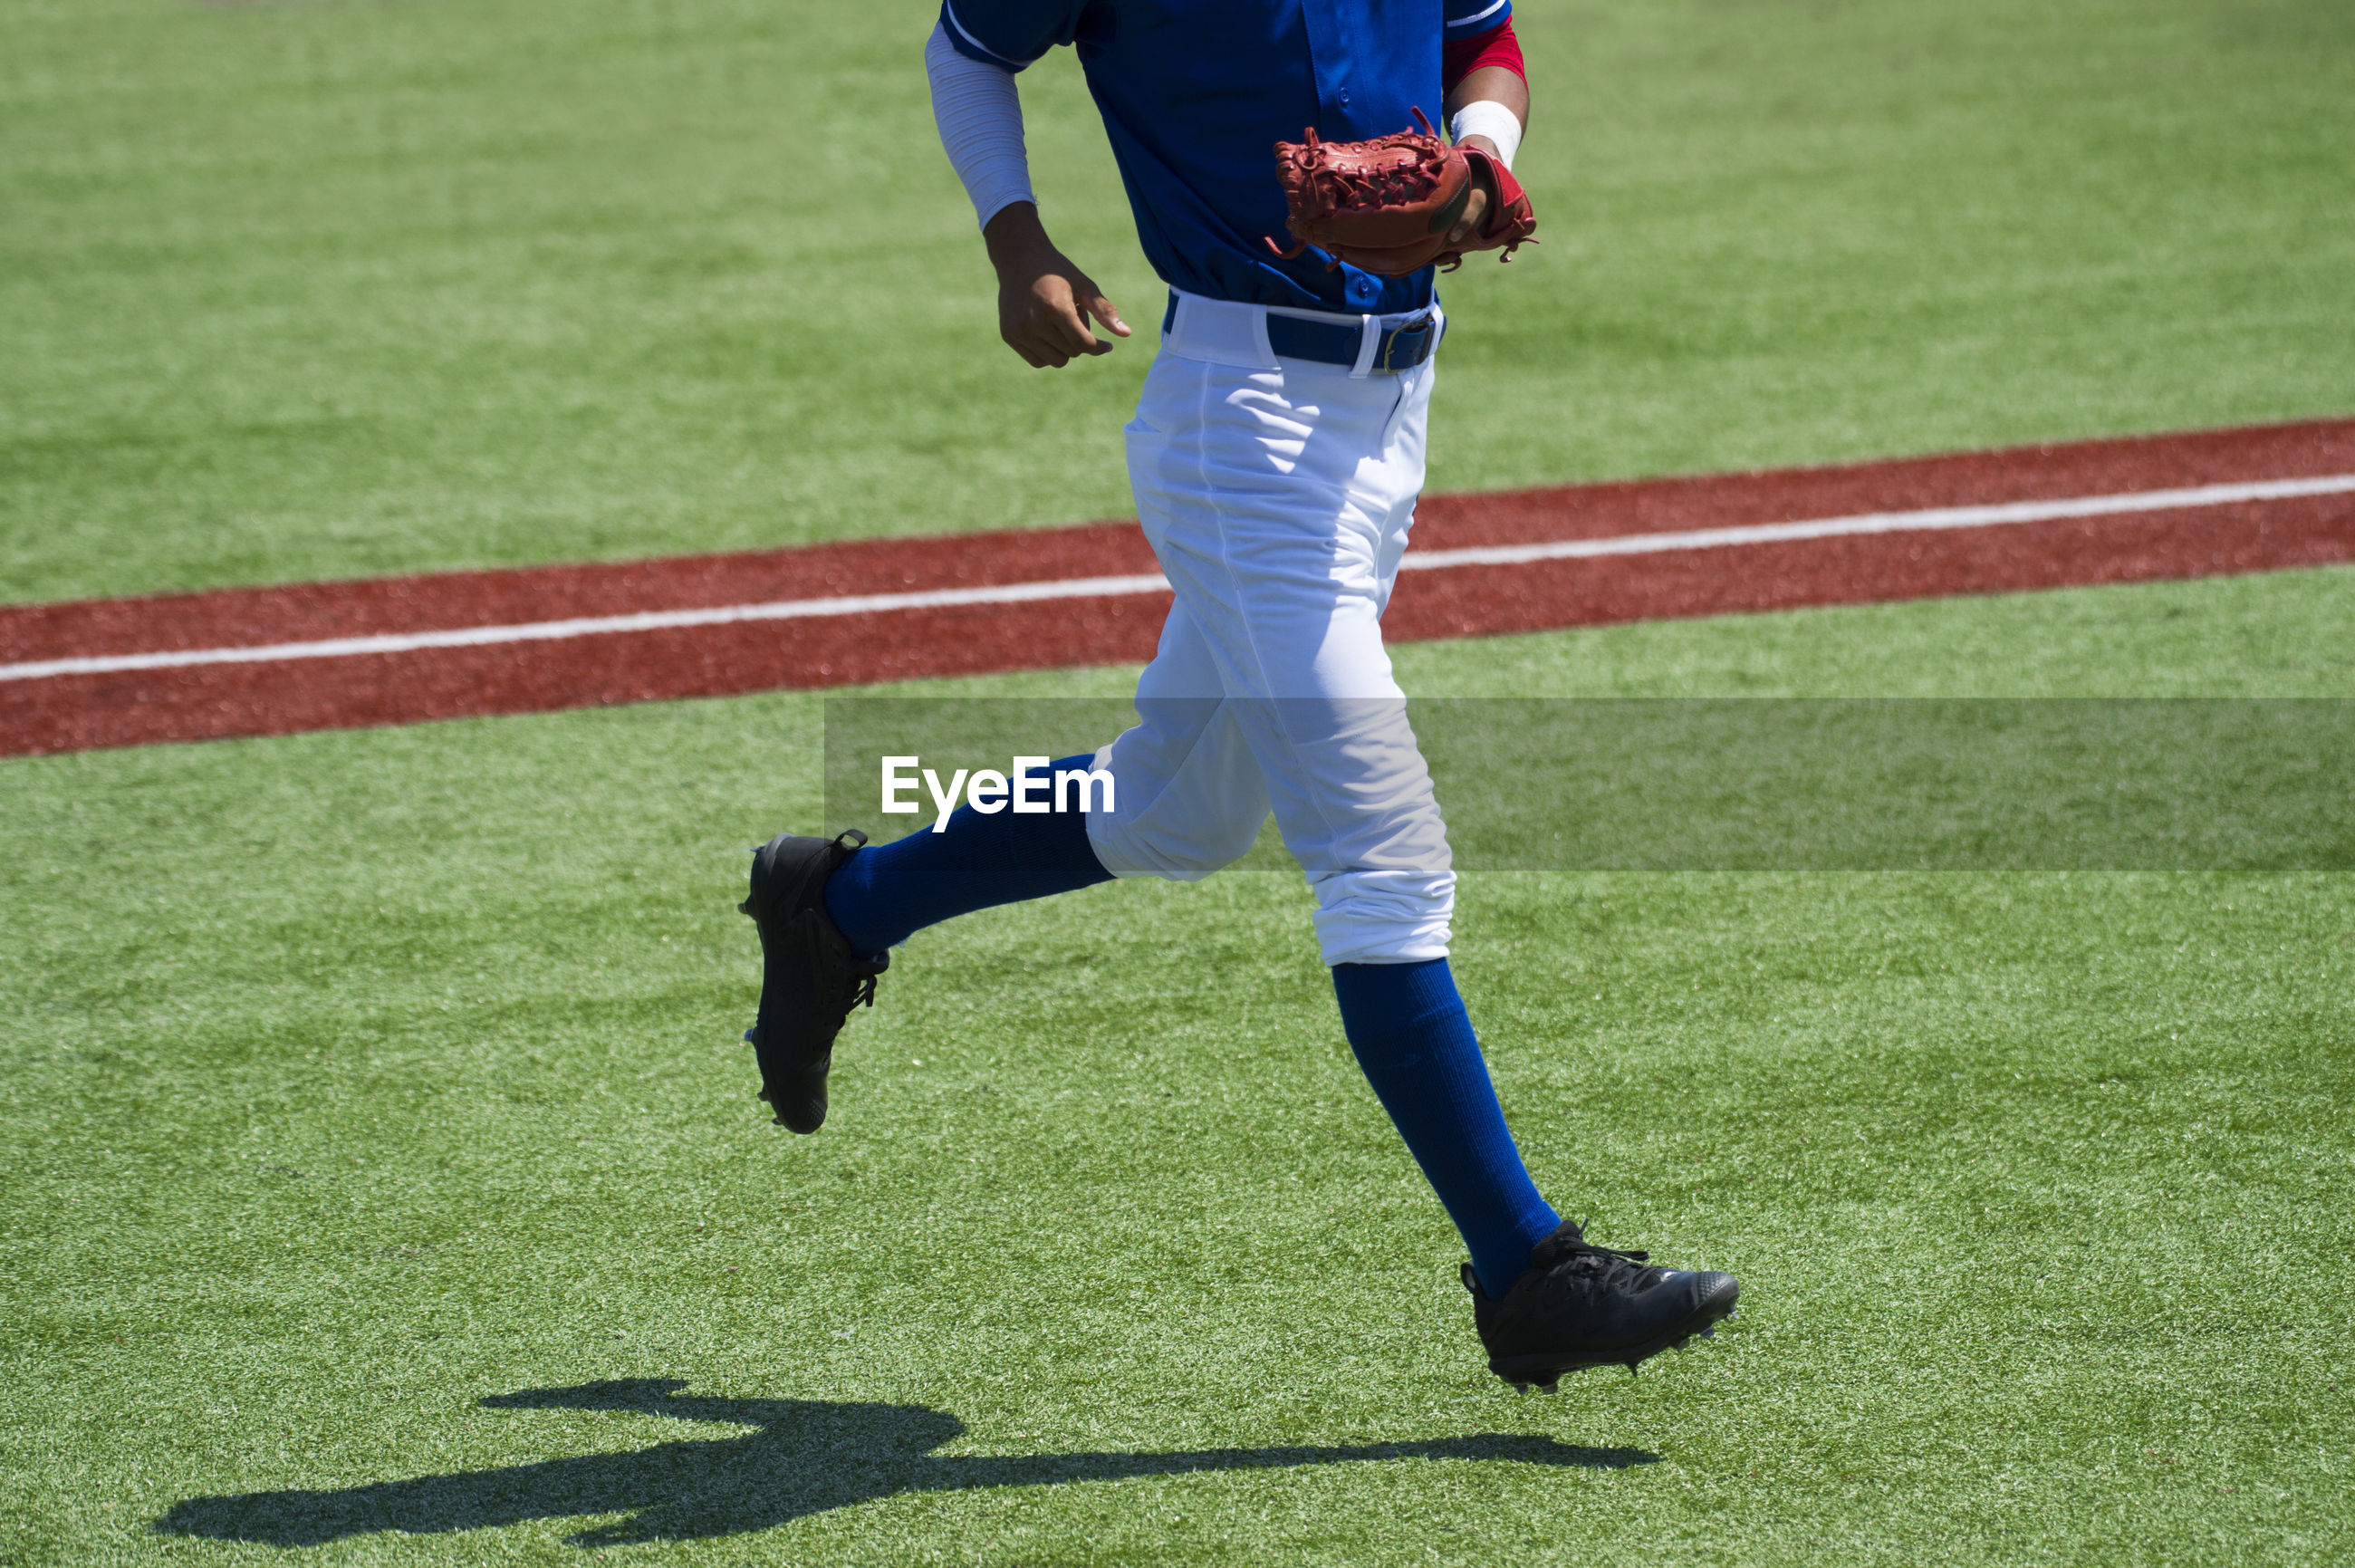 Low section of baseball player running on playing field